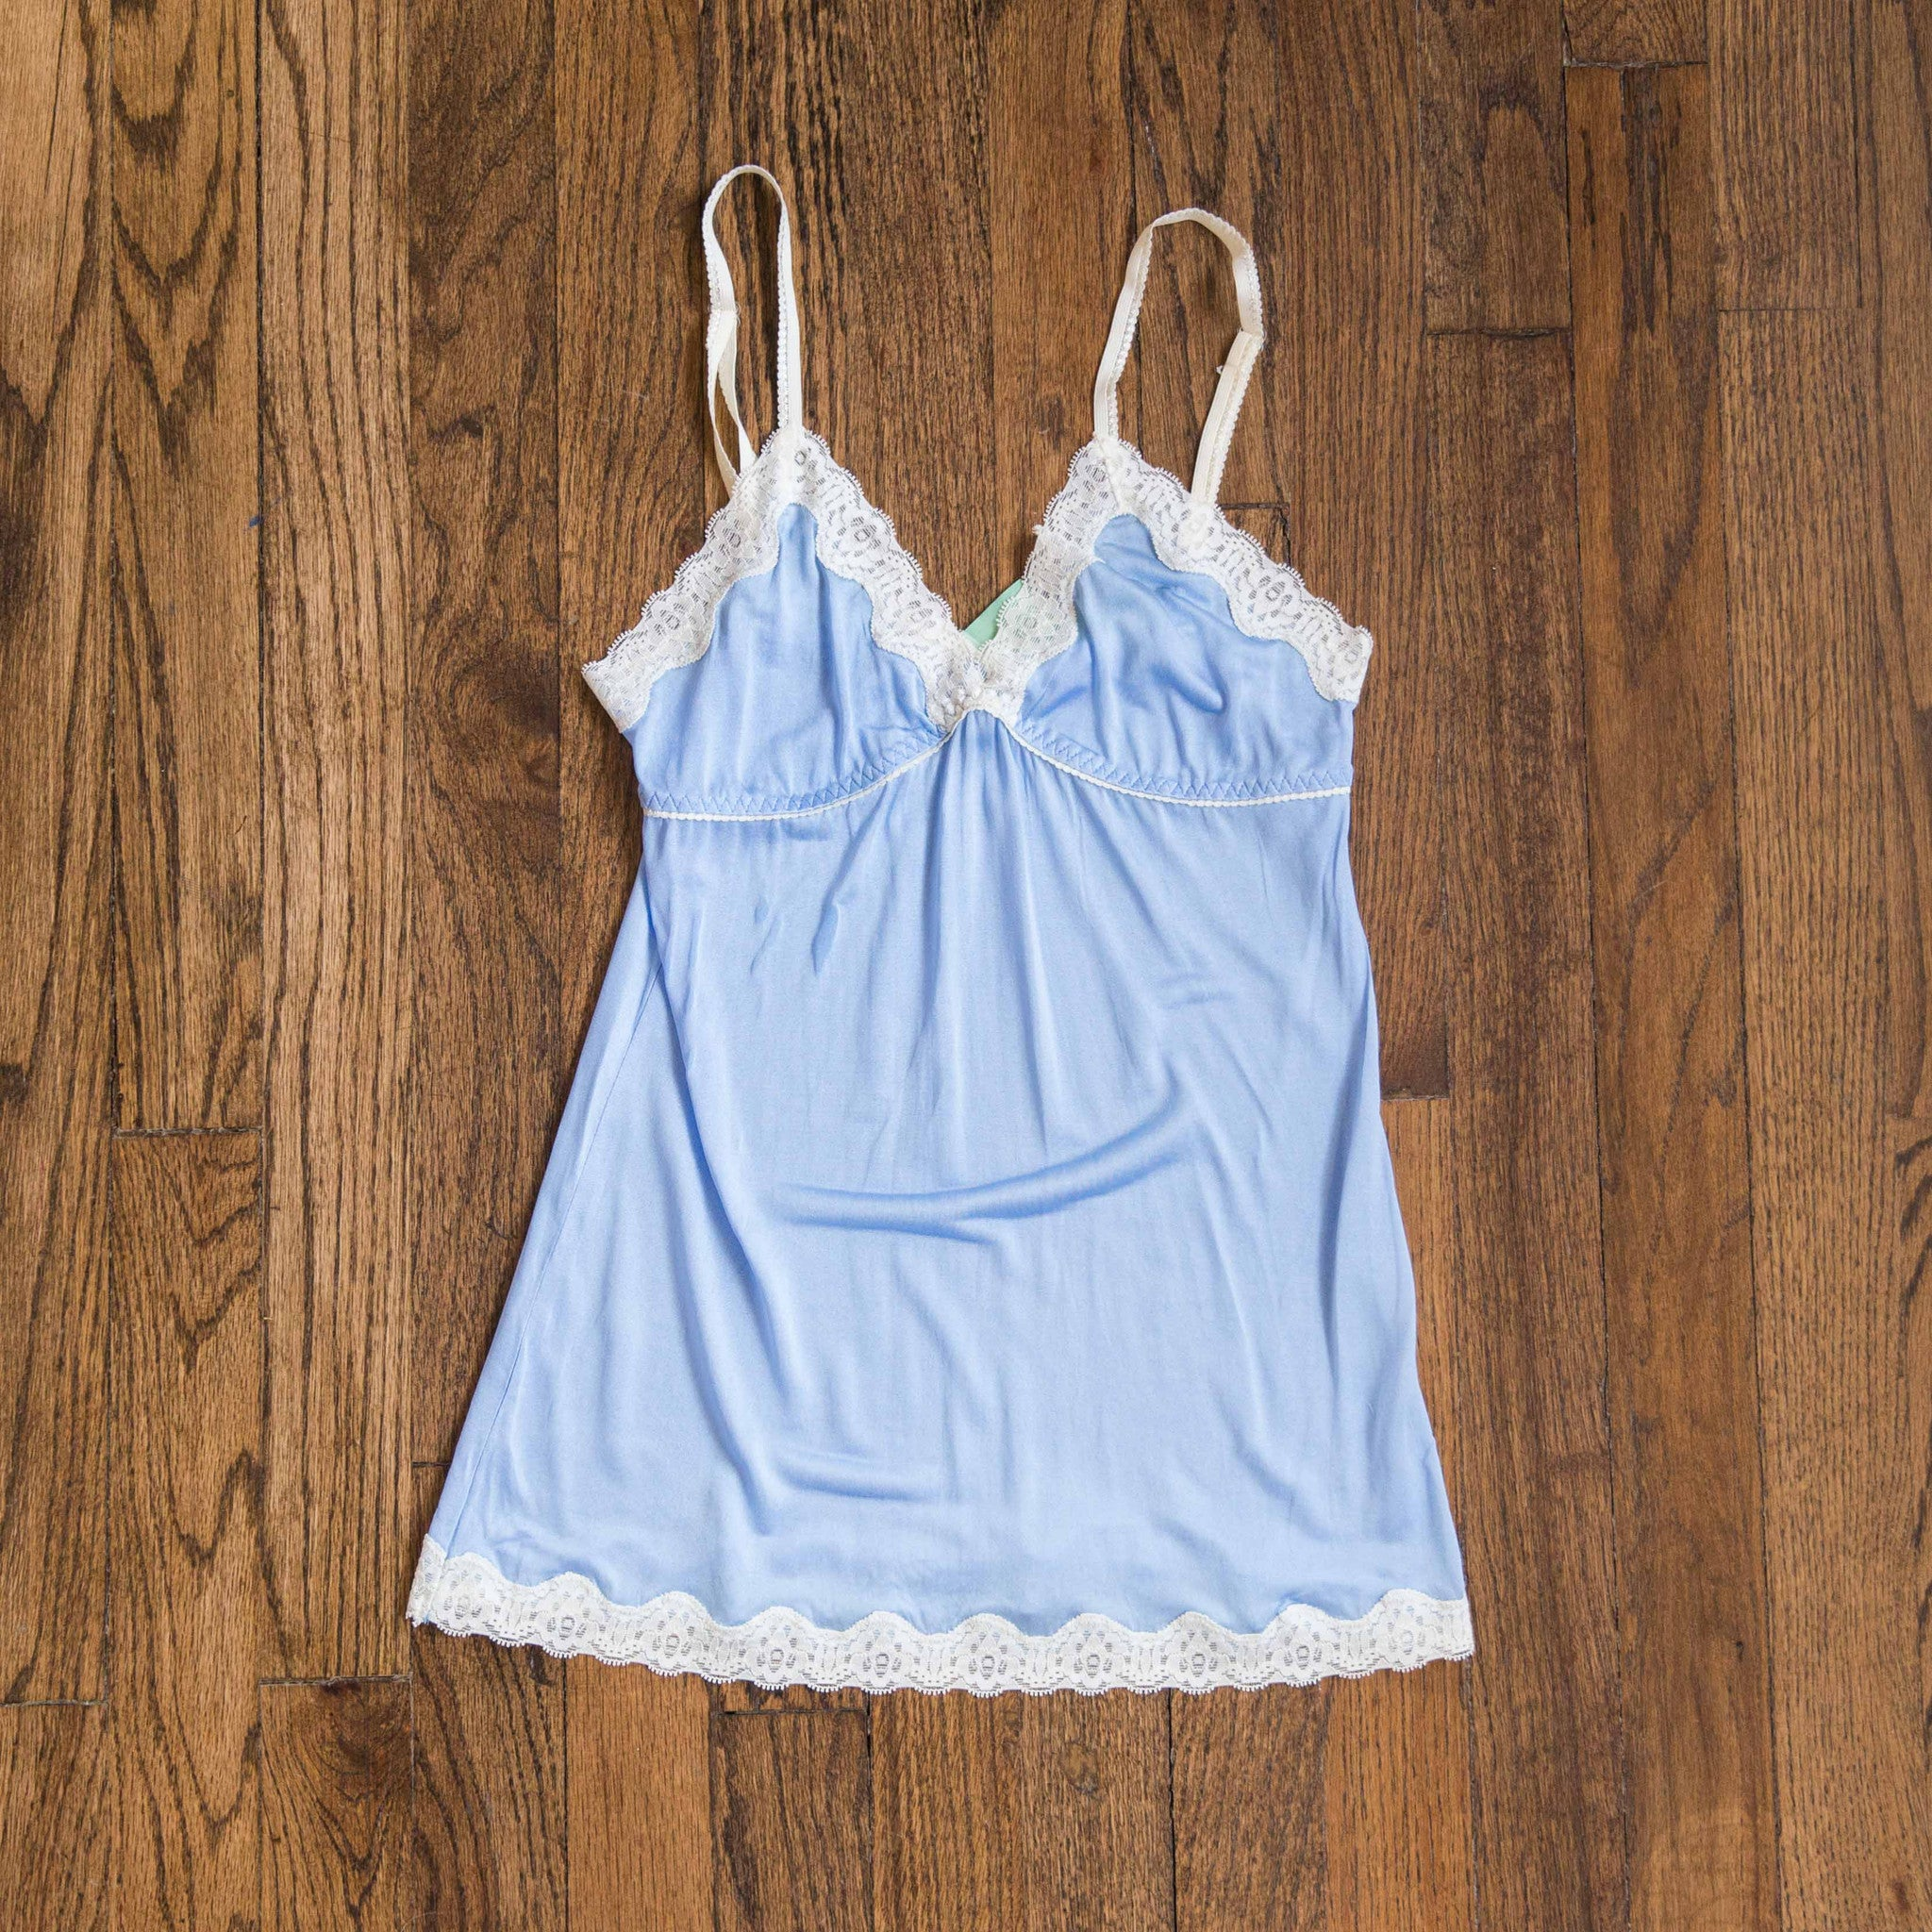 MARY GREEN BLUE/WHITE SILK KNIT W/LACE CAMISOLE